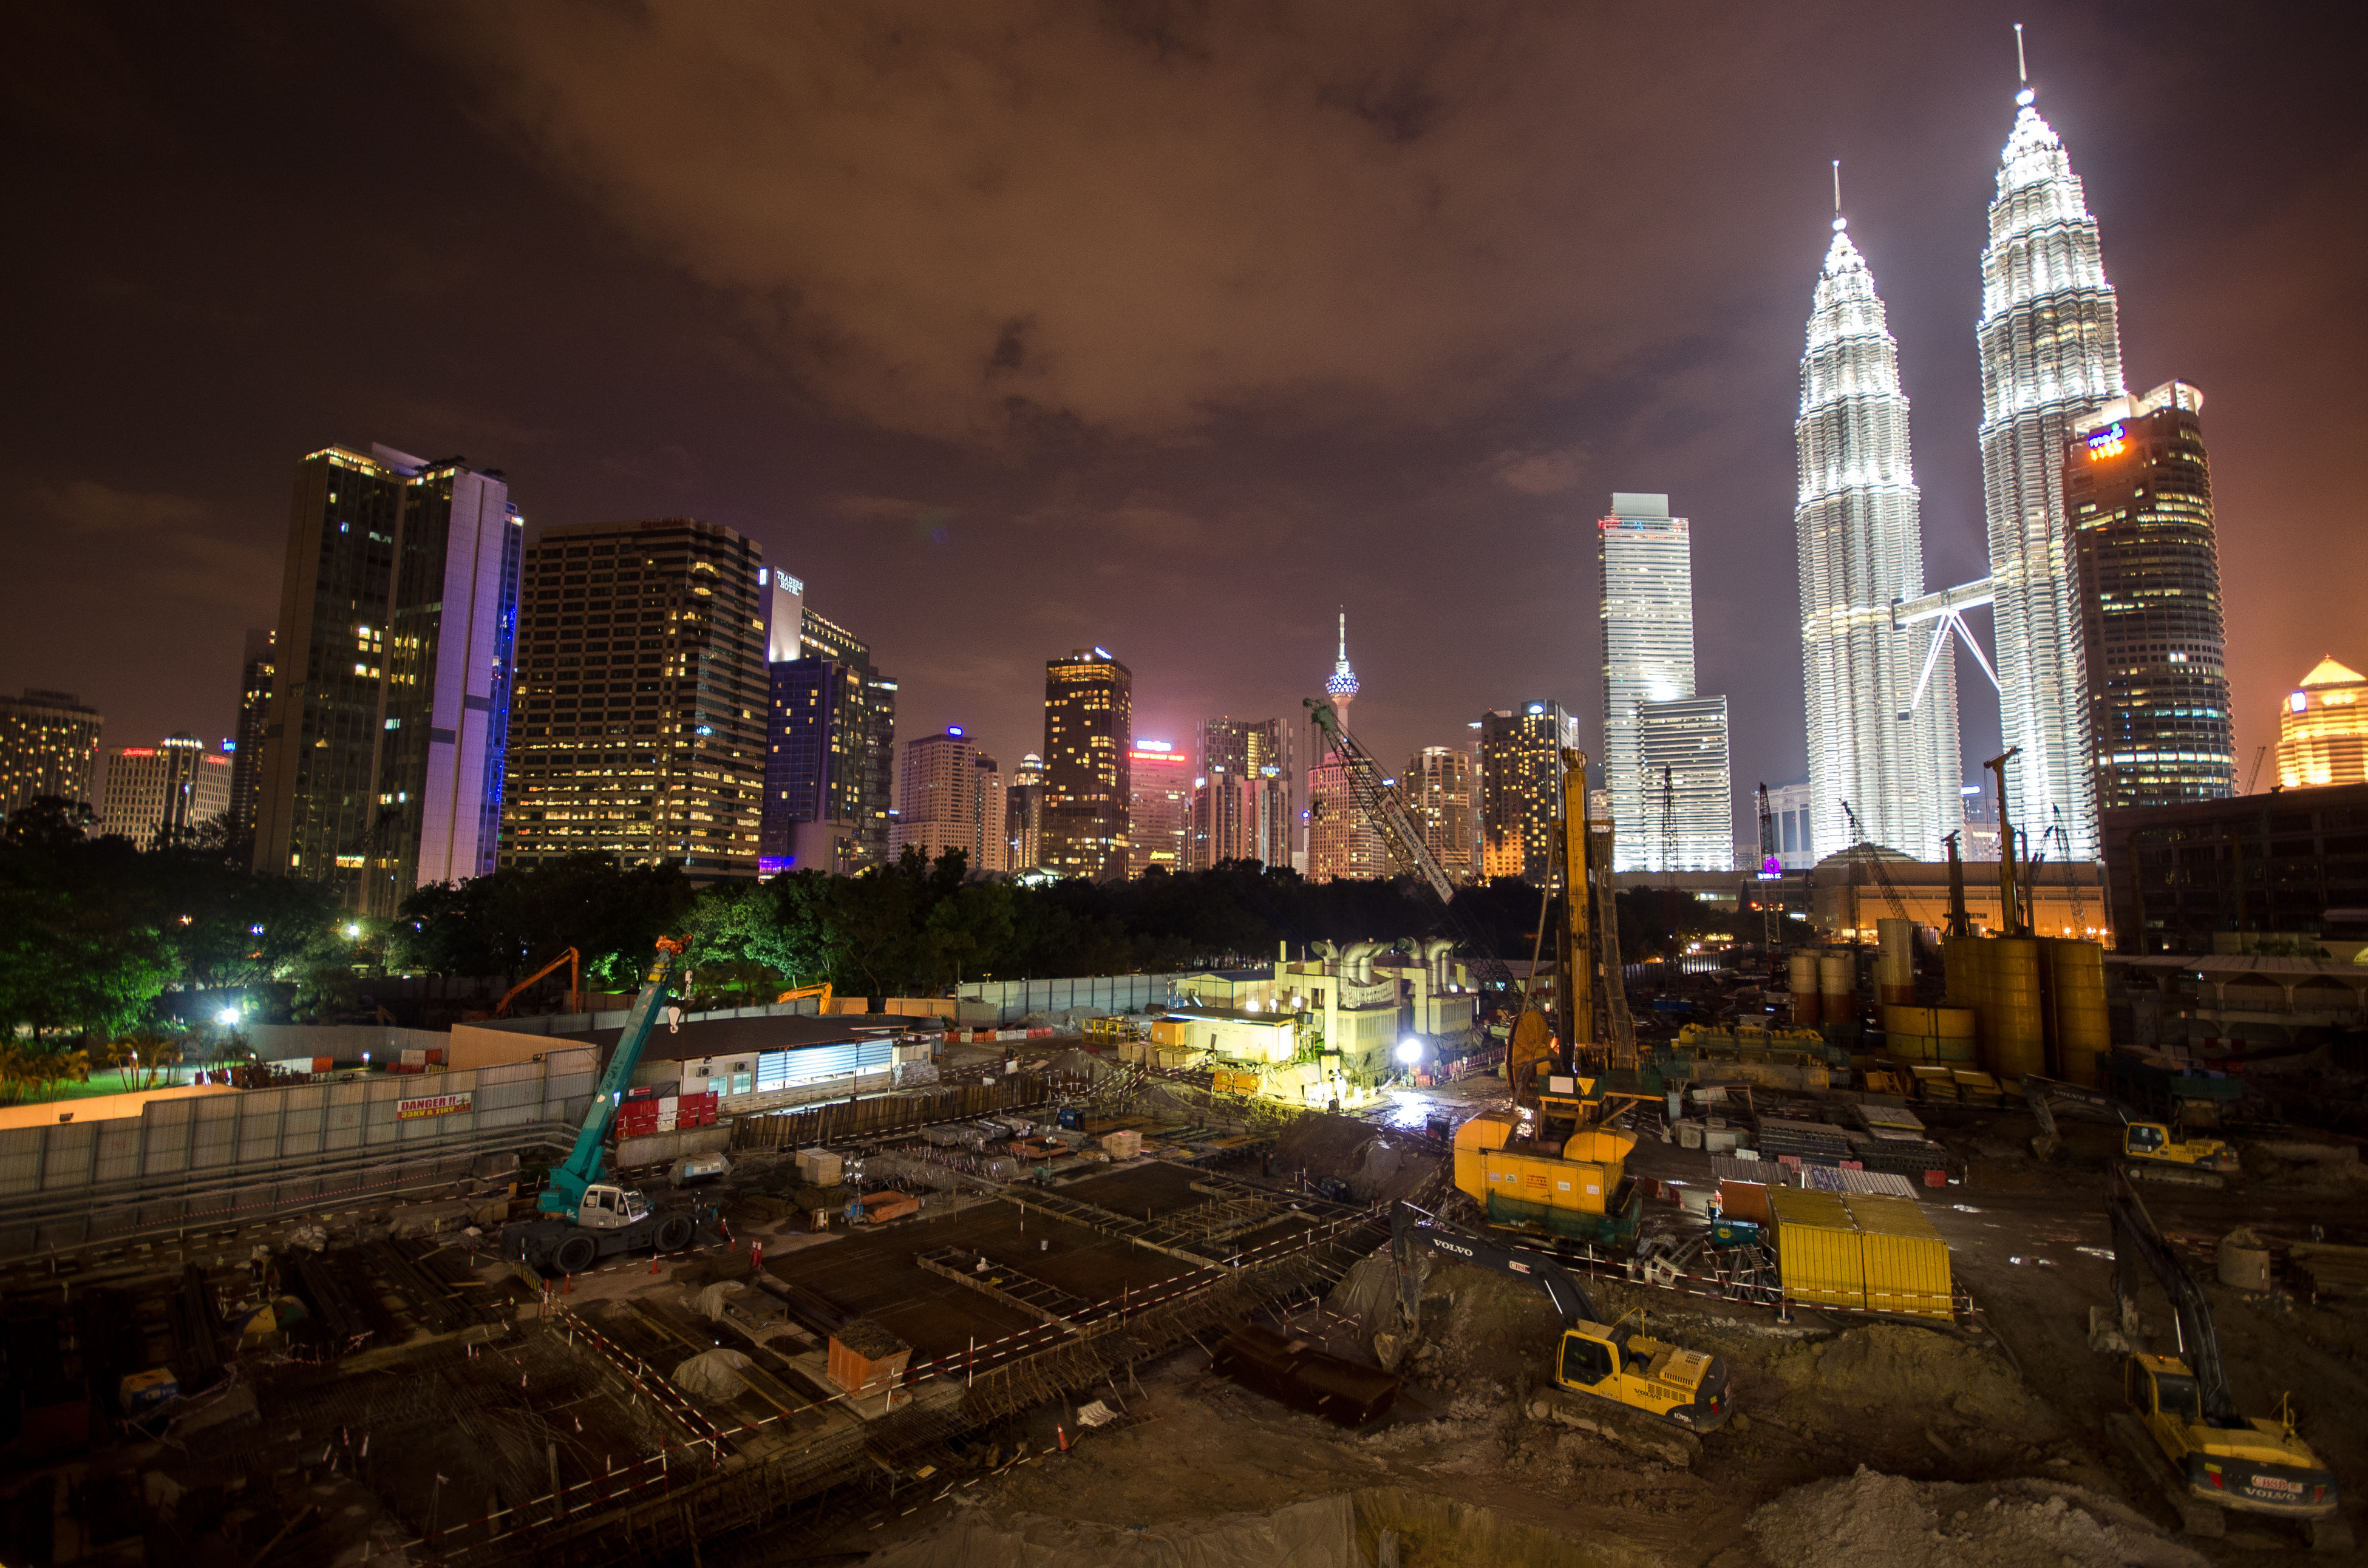 building exterior, architecture, city, built structure, illuminated, night, skyscraper, cityscape, tower, tall - high, sky, urban skyline, office building, modern, capital cities, city life, financial district, travel destinations, famous place, dusk